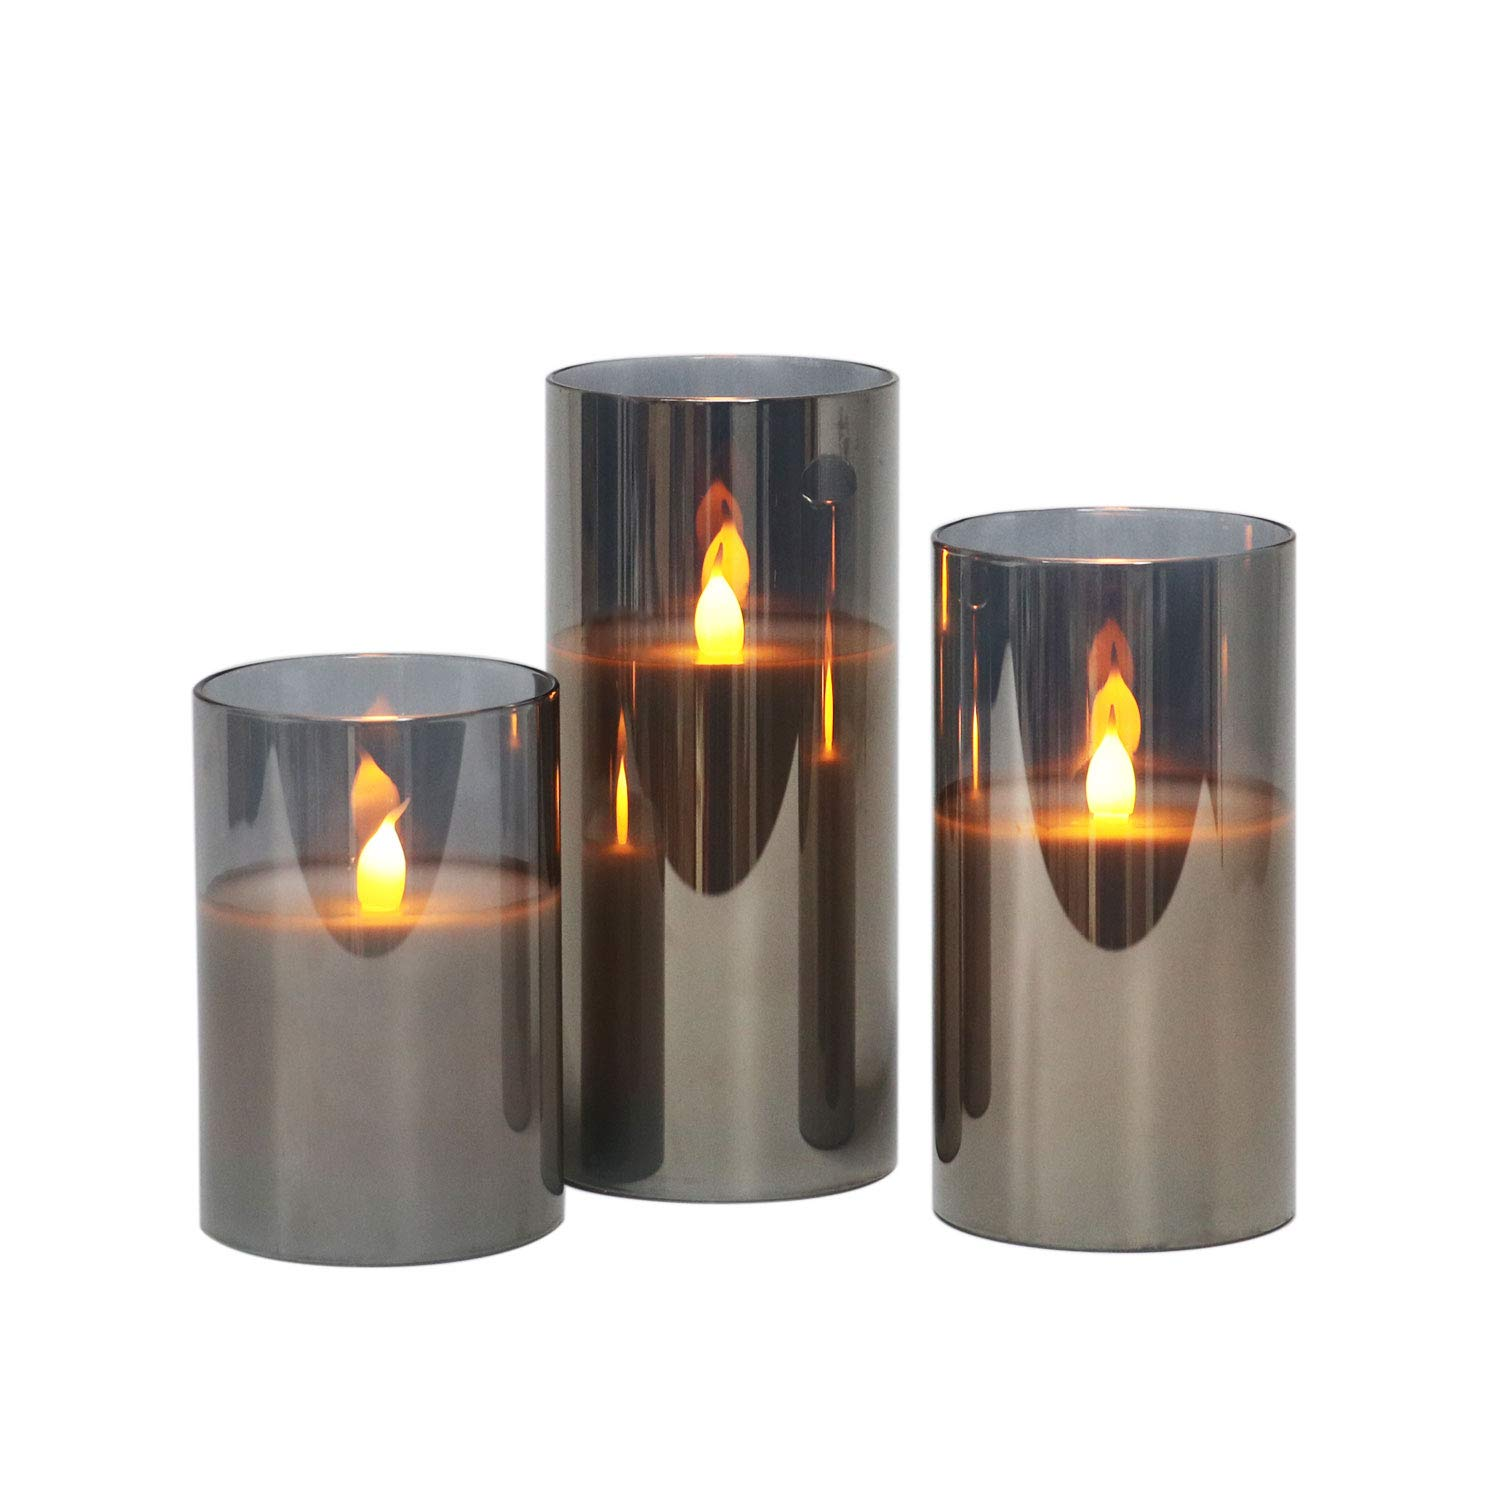 Gray Glass Battery Operated Flameless Led Candles with Timer, Warm White Flickering Light, Batteries Included - Set of 3